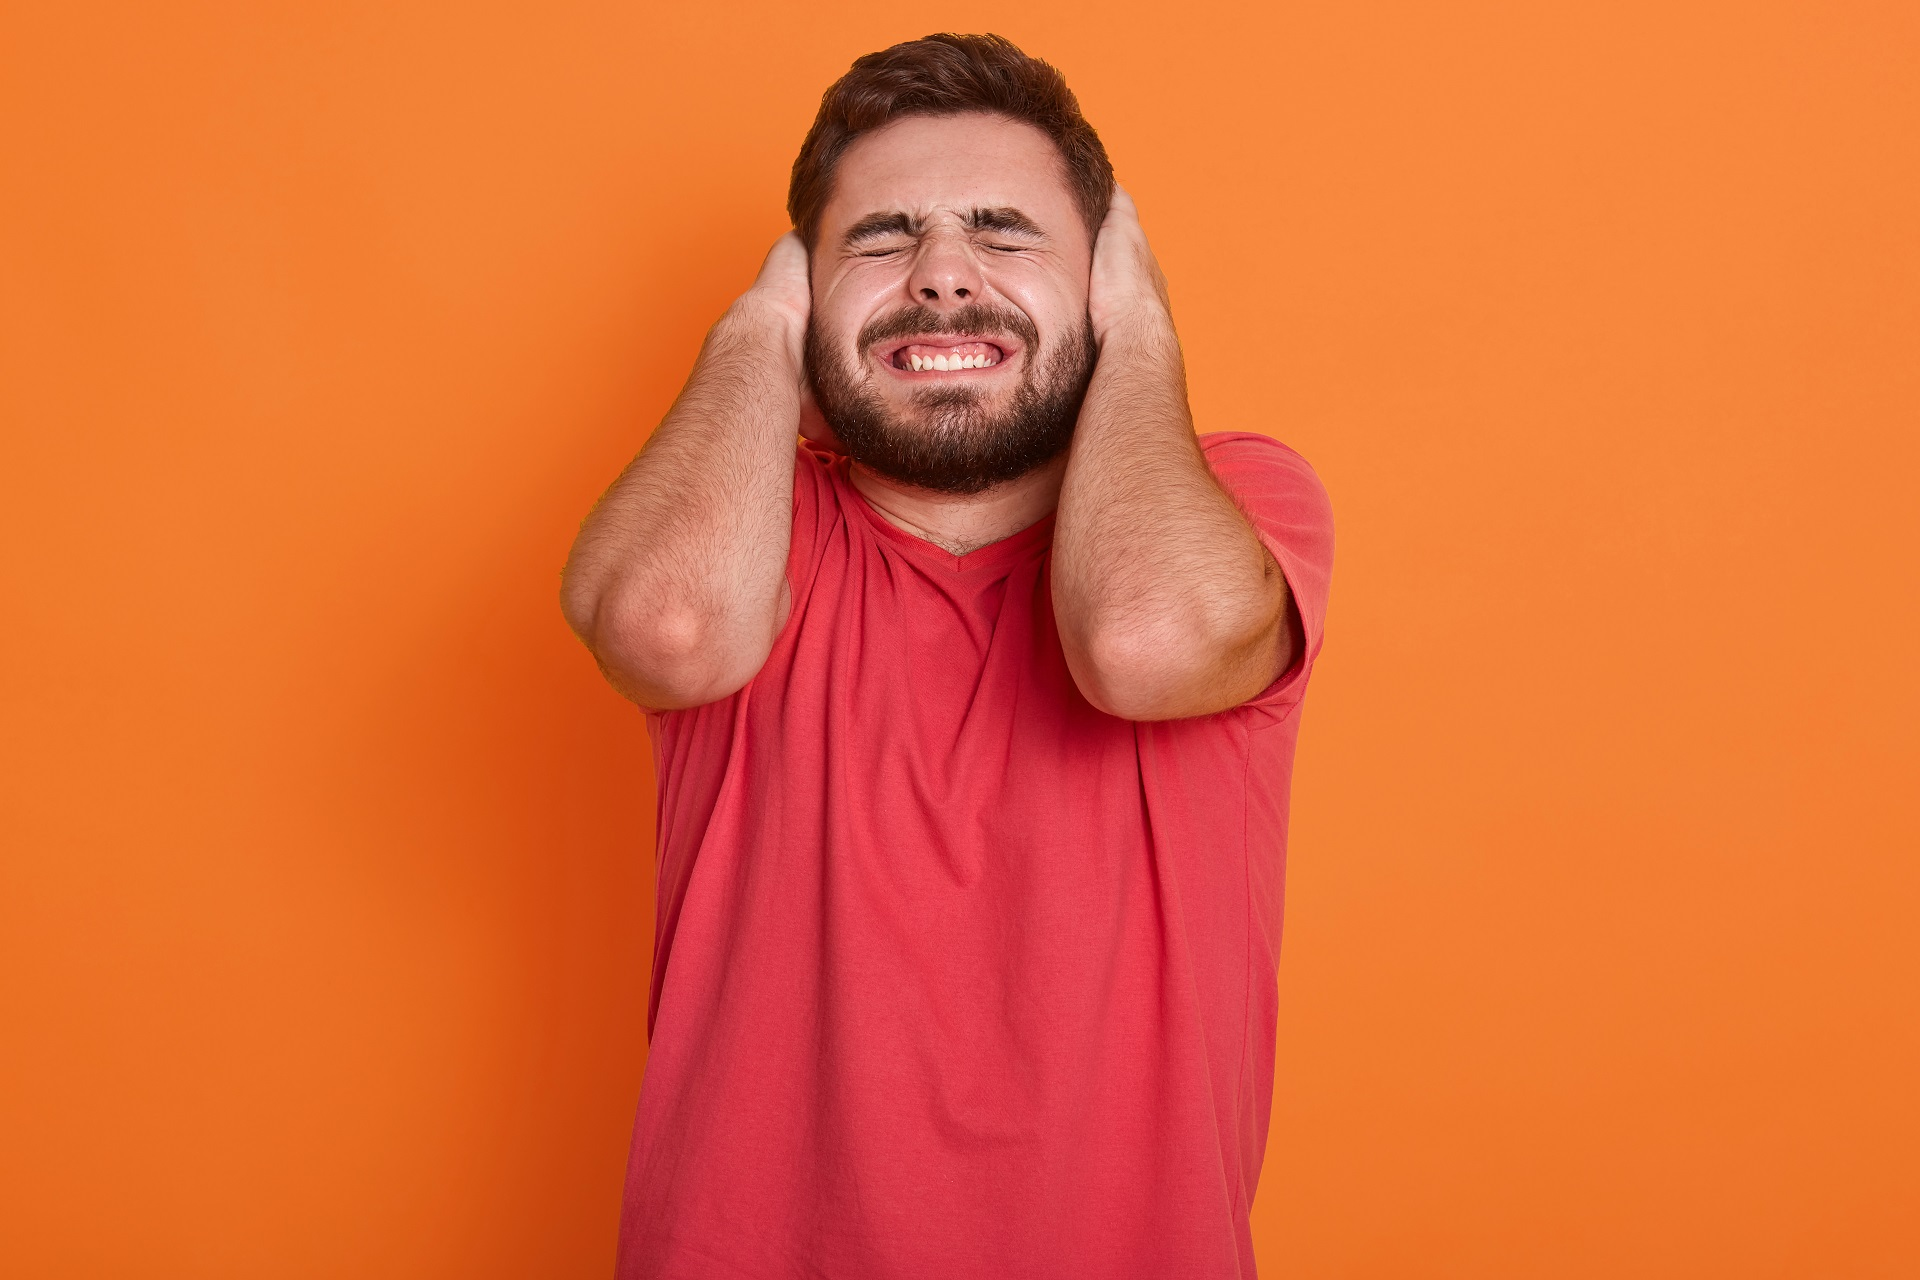 Man covering his ears due to a loud noise